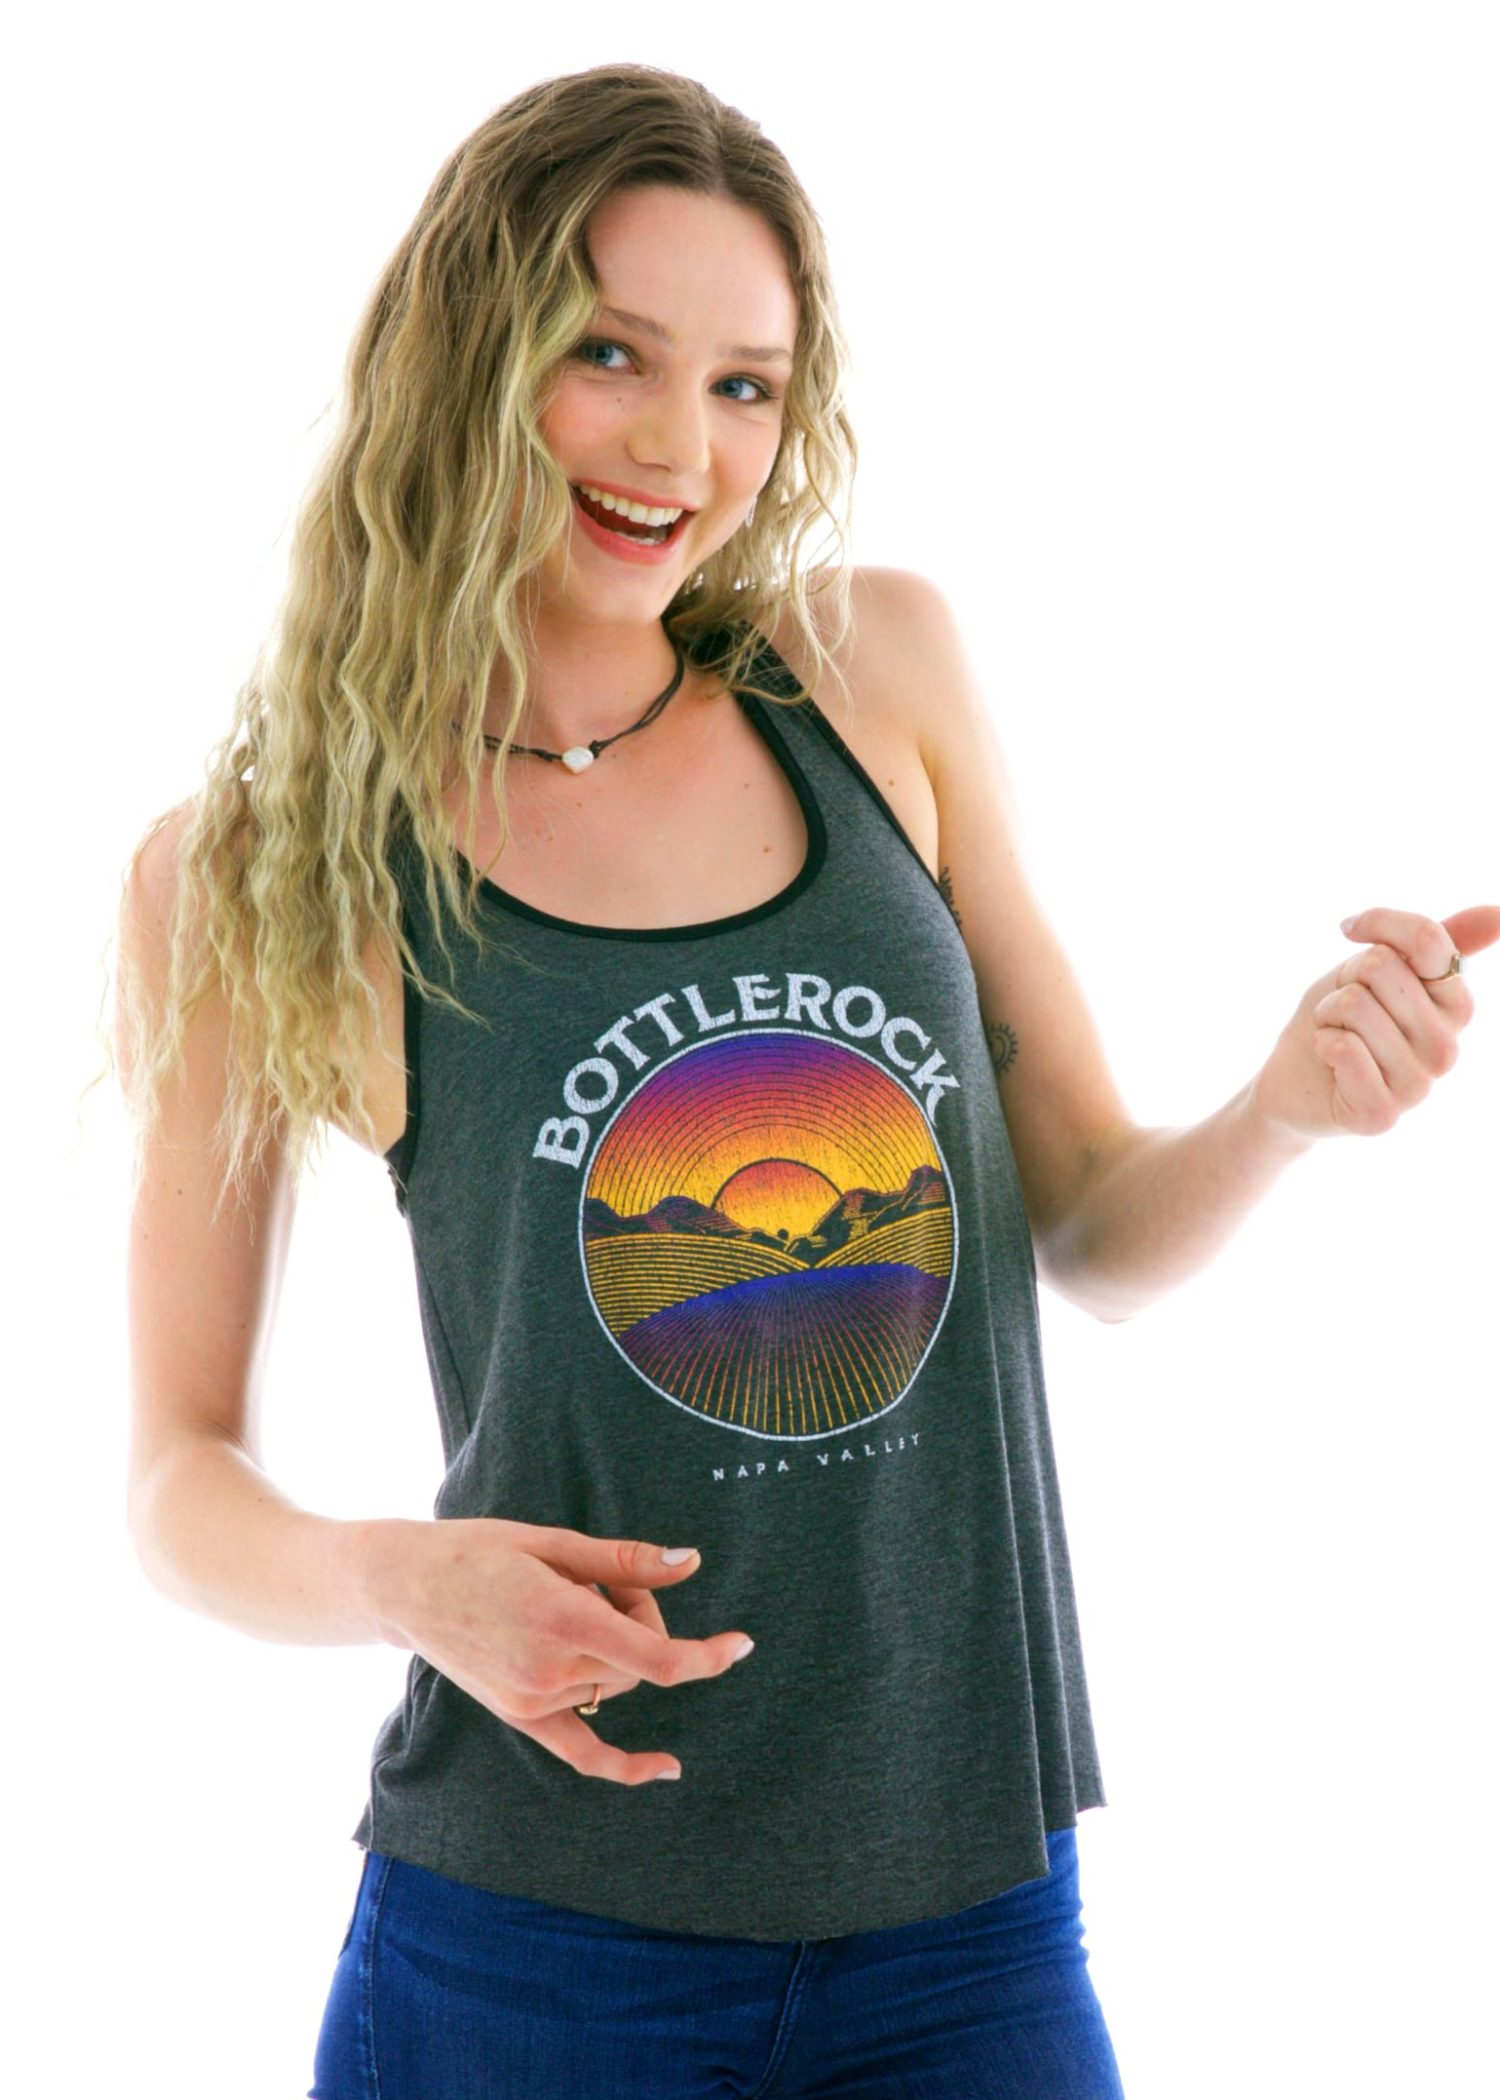 Racerback Ringer Tank Top with Logo